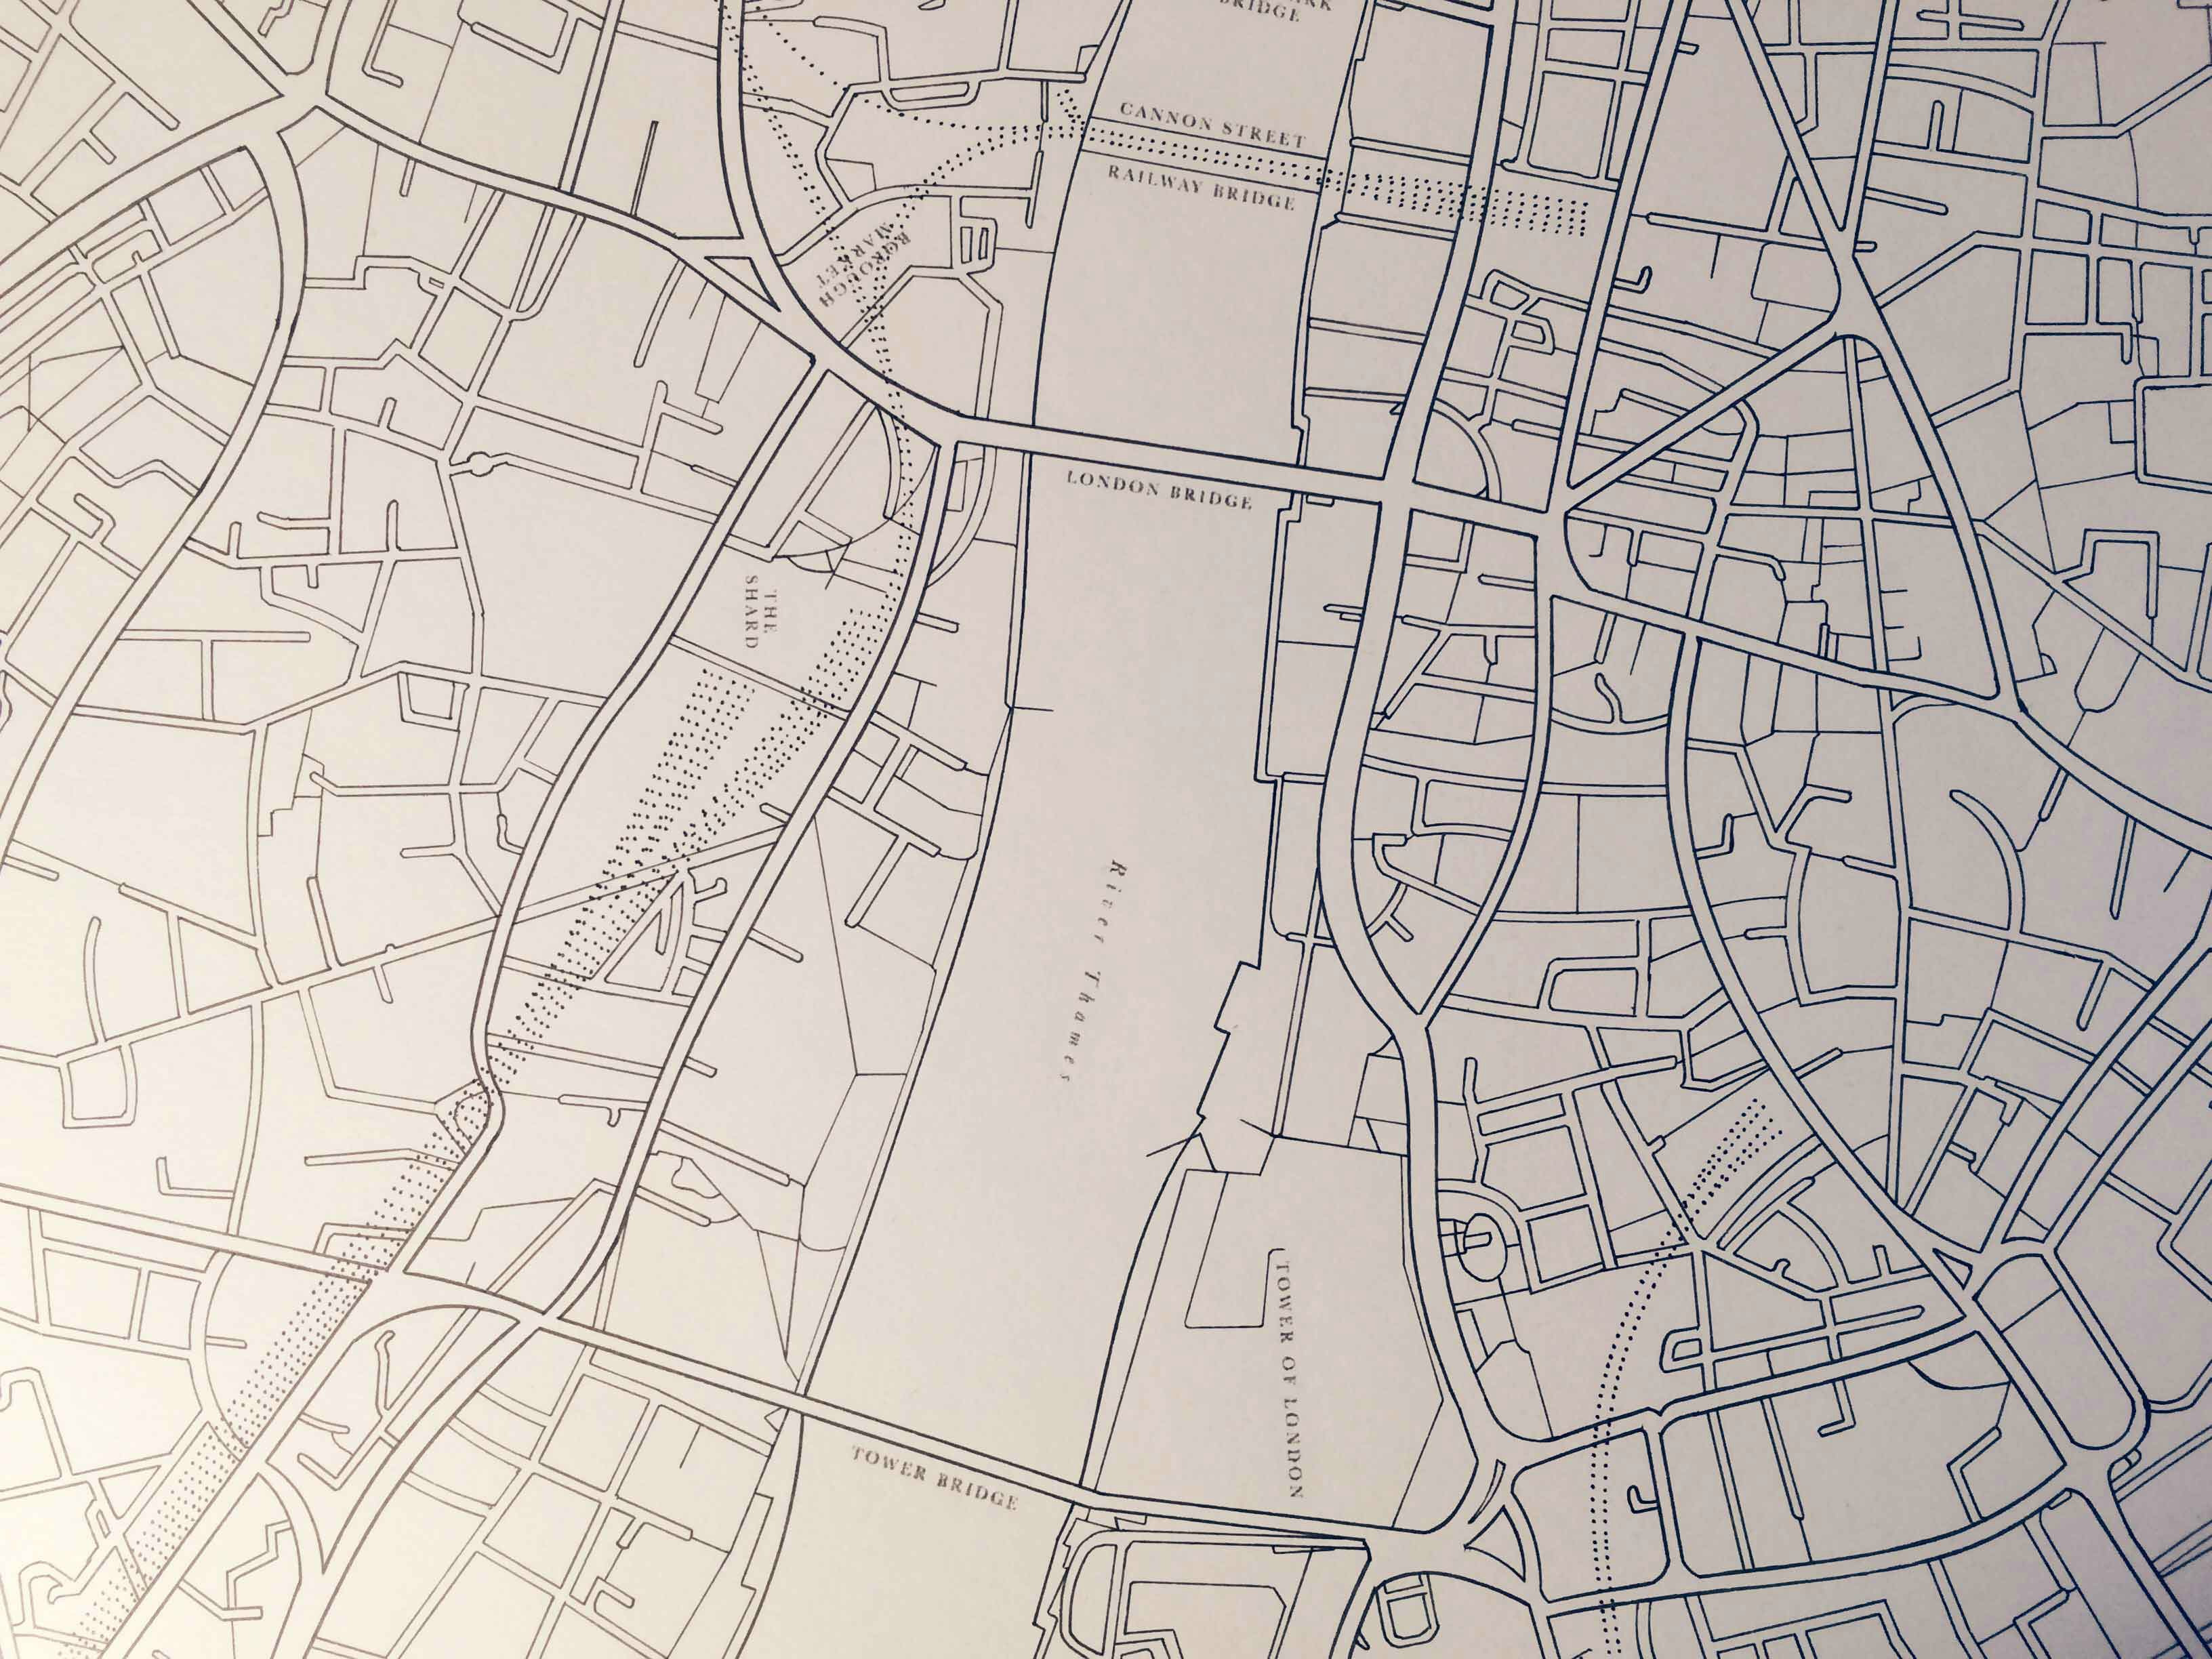 3264x2448 Minimalist Hand Drawn Maps Of London Amp Edinburgh Brilliant Maps